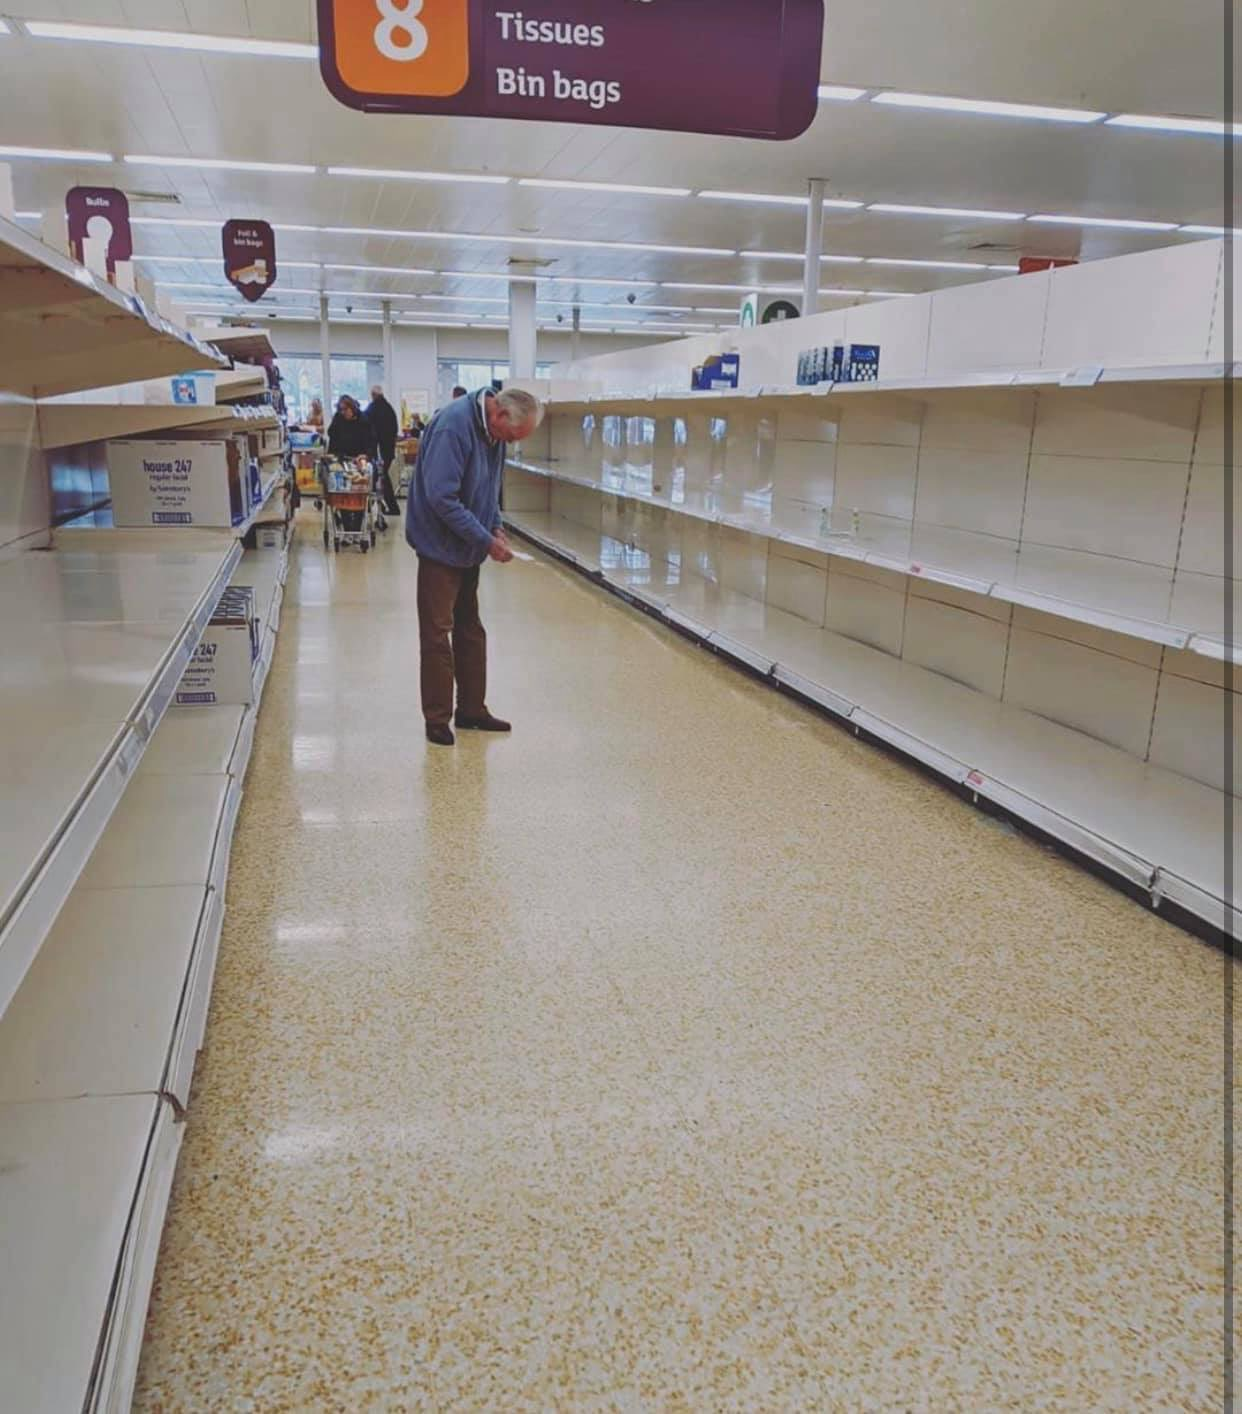 Panic buying in the UK leaves grocery store shelves empty, prompting supermarket chains to impose purchase limits. Photo courtesy: Twitter/@Covid19depot